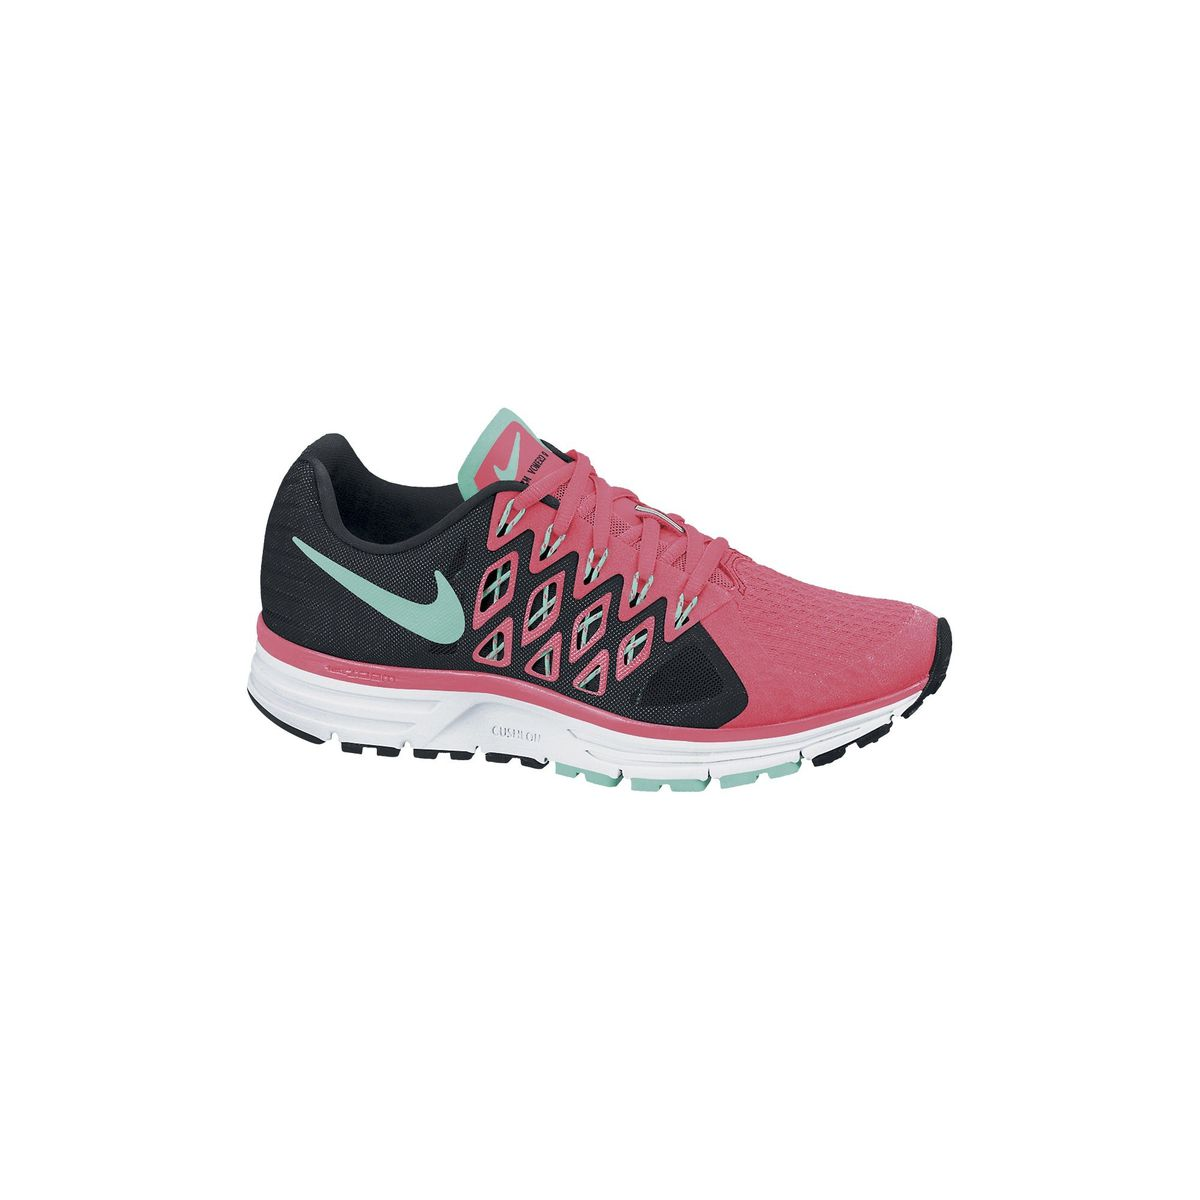 the best attitude ae960 cfd54 ... official store loading zoom womens nike zoom vomero 9 running shoe .  8af44 fba68